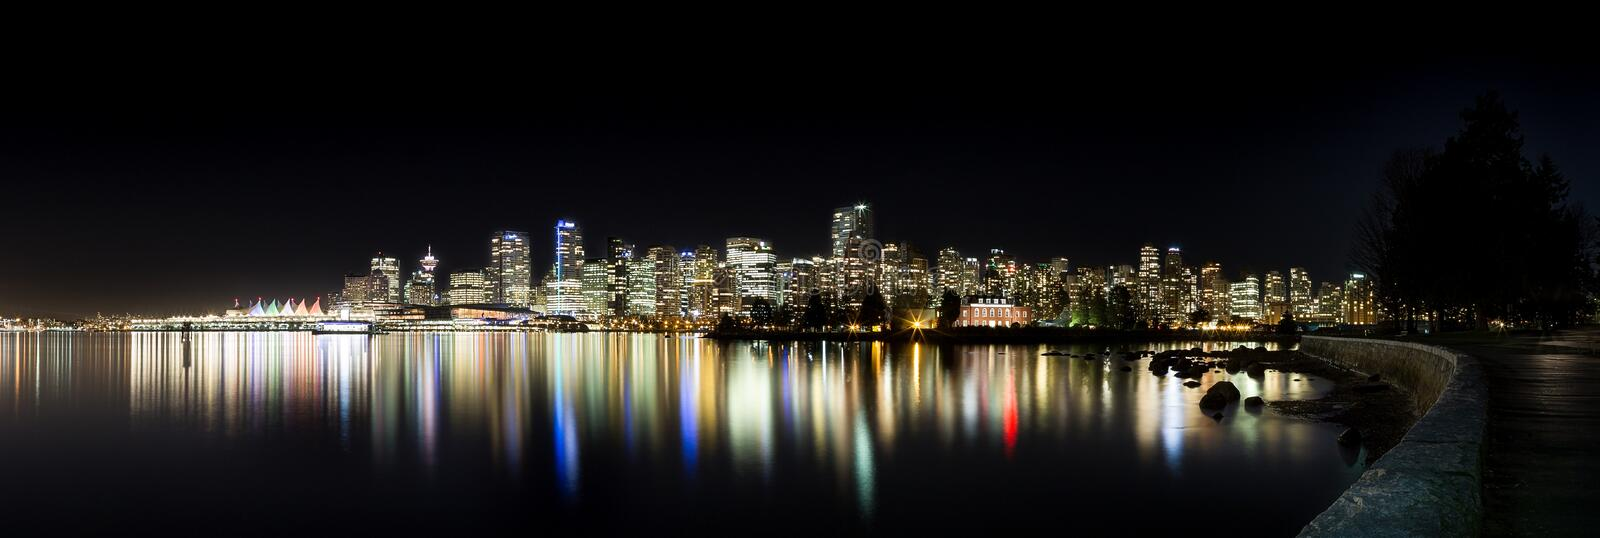 The downtown Vancouver skyline at night from Stanley Park. The downtown Vancouver skyline at night from Stanley Park stock images